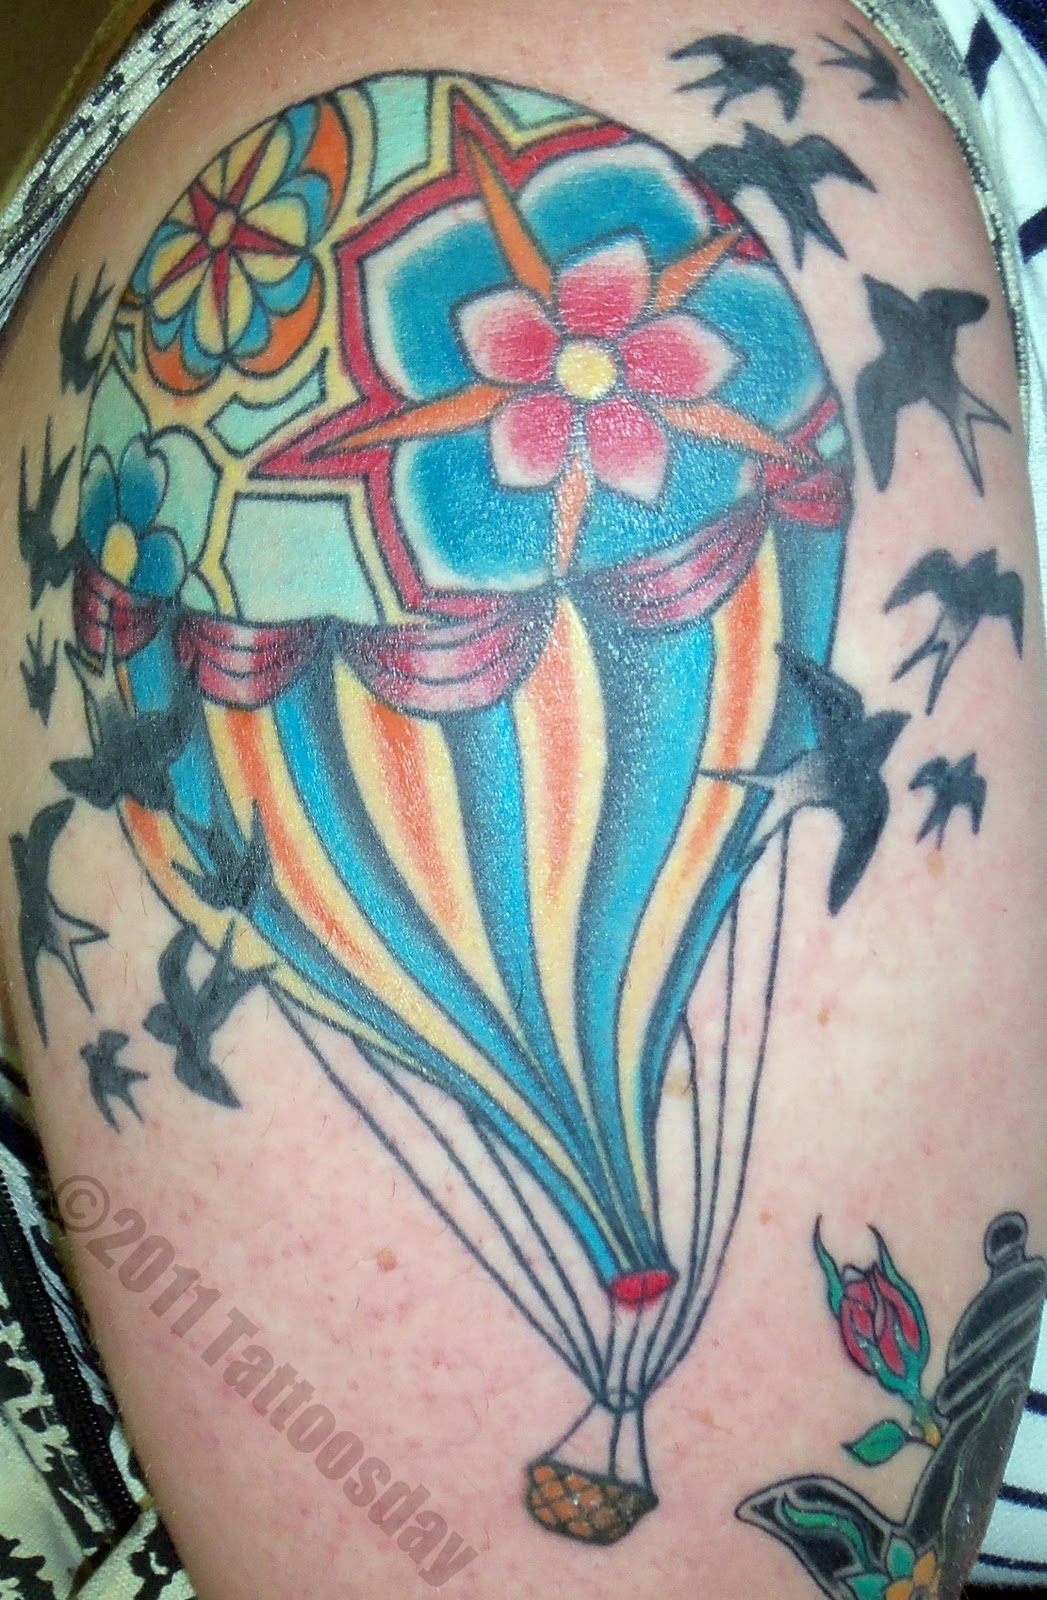 Tattoosday (A Tattoo Blog): Amy and Her Colorful Hot Air ...